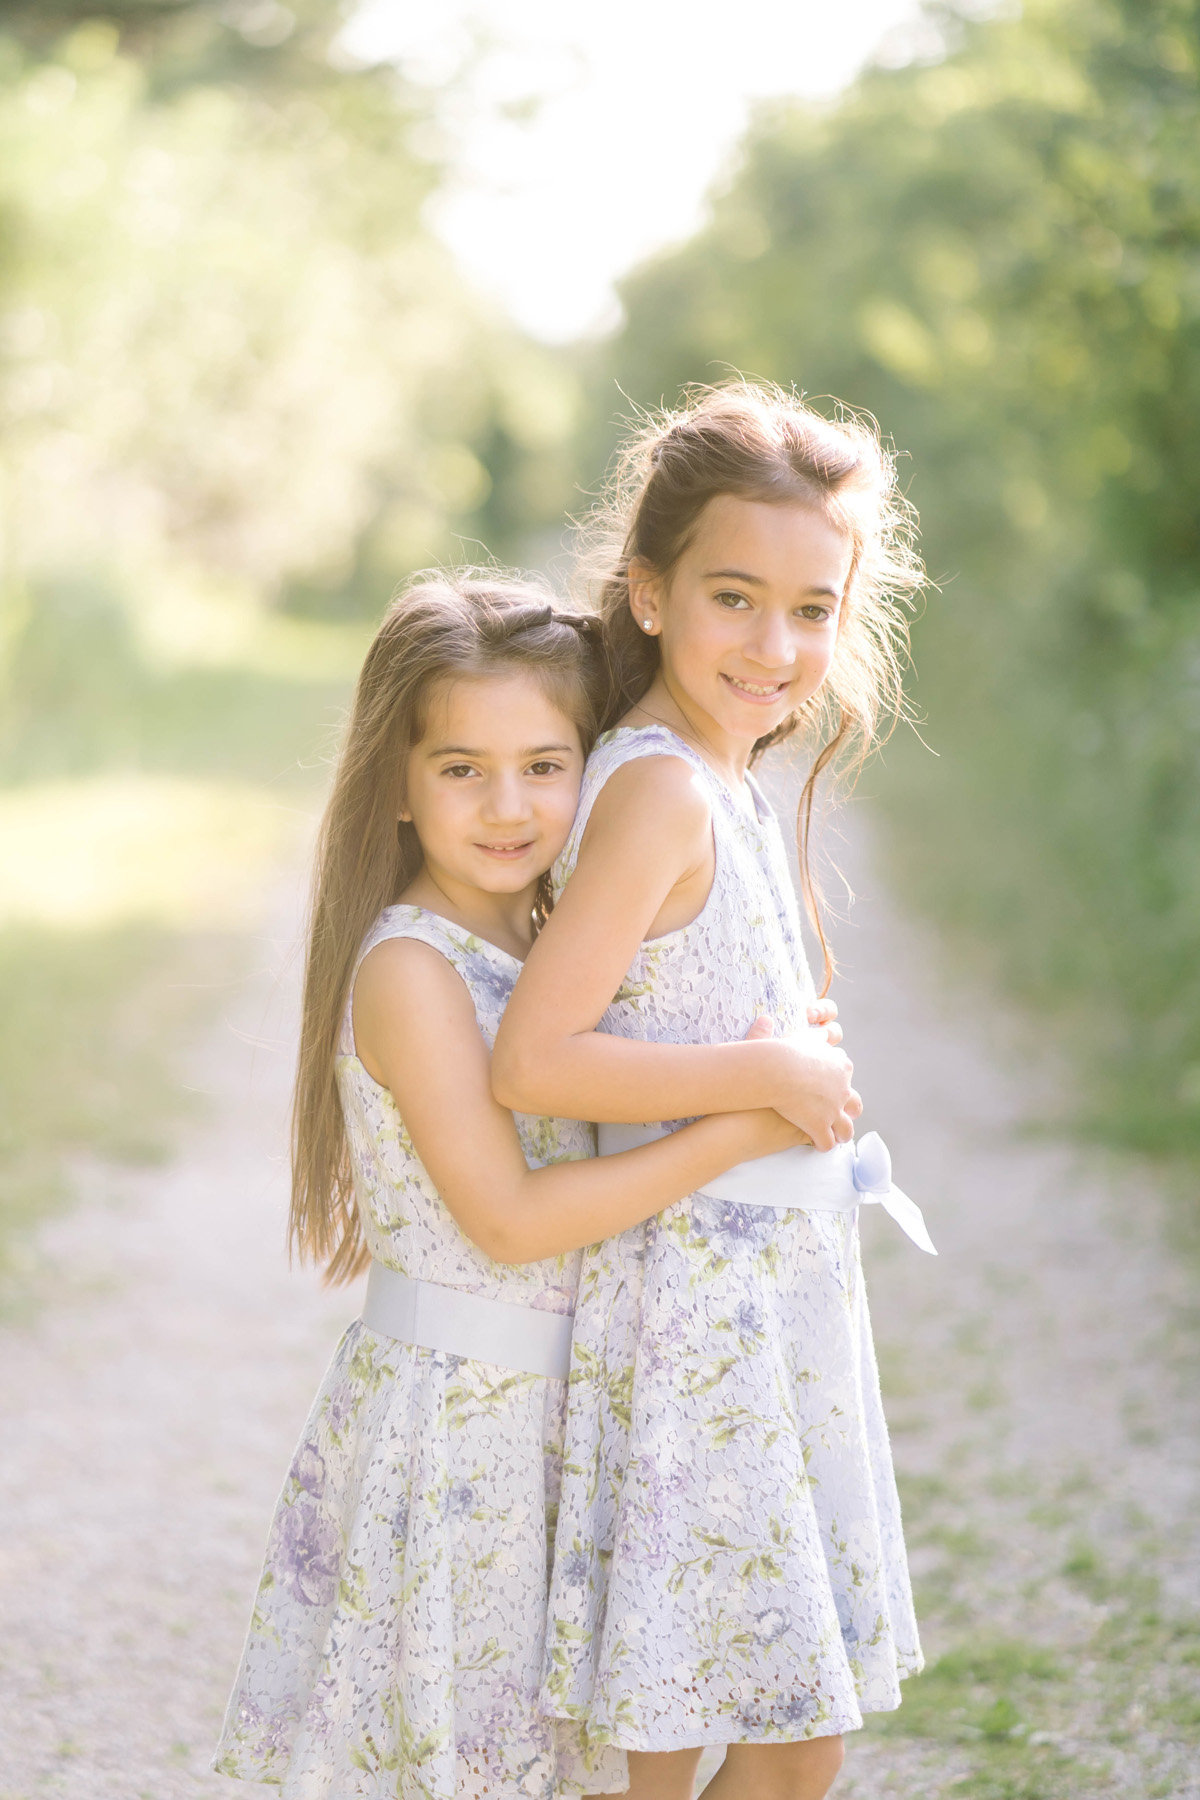 Two sisters hugging each other.